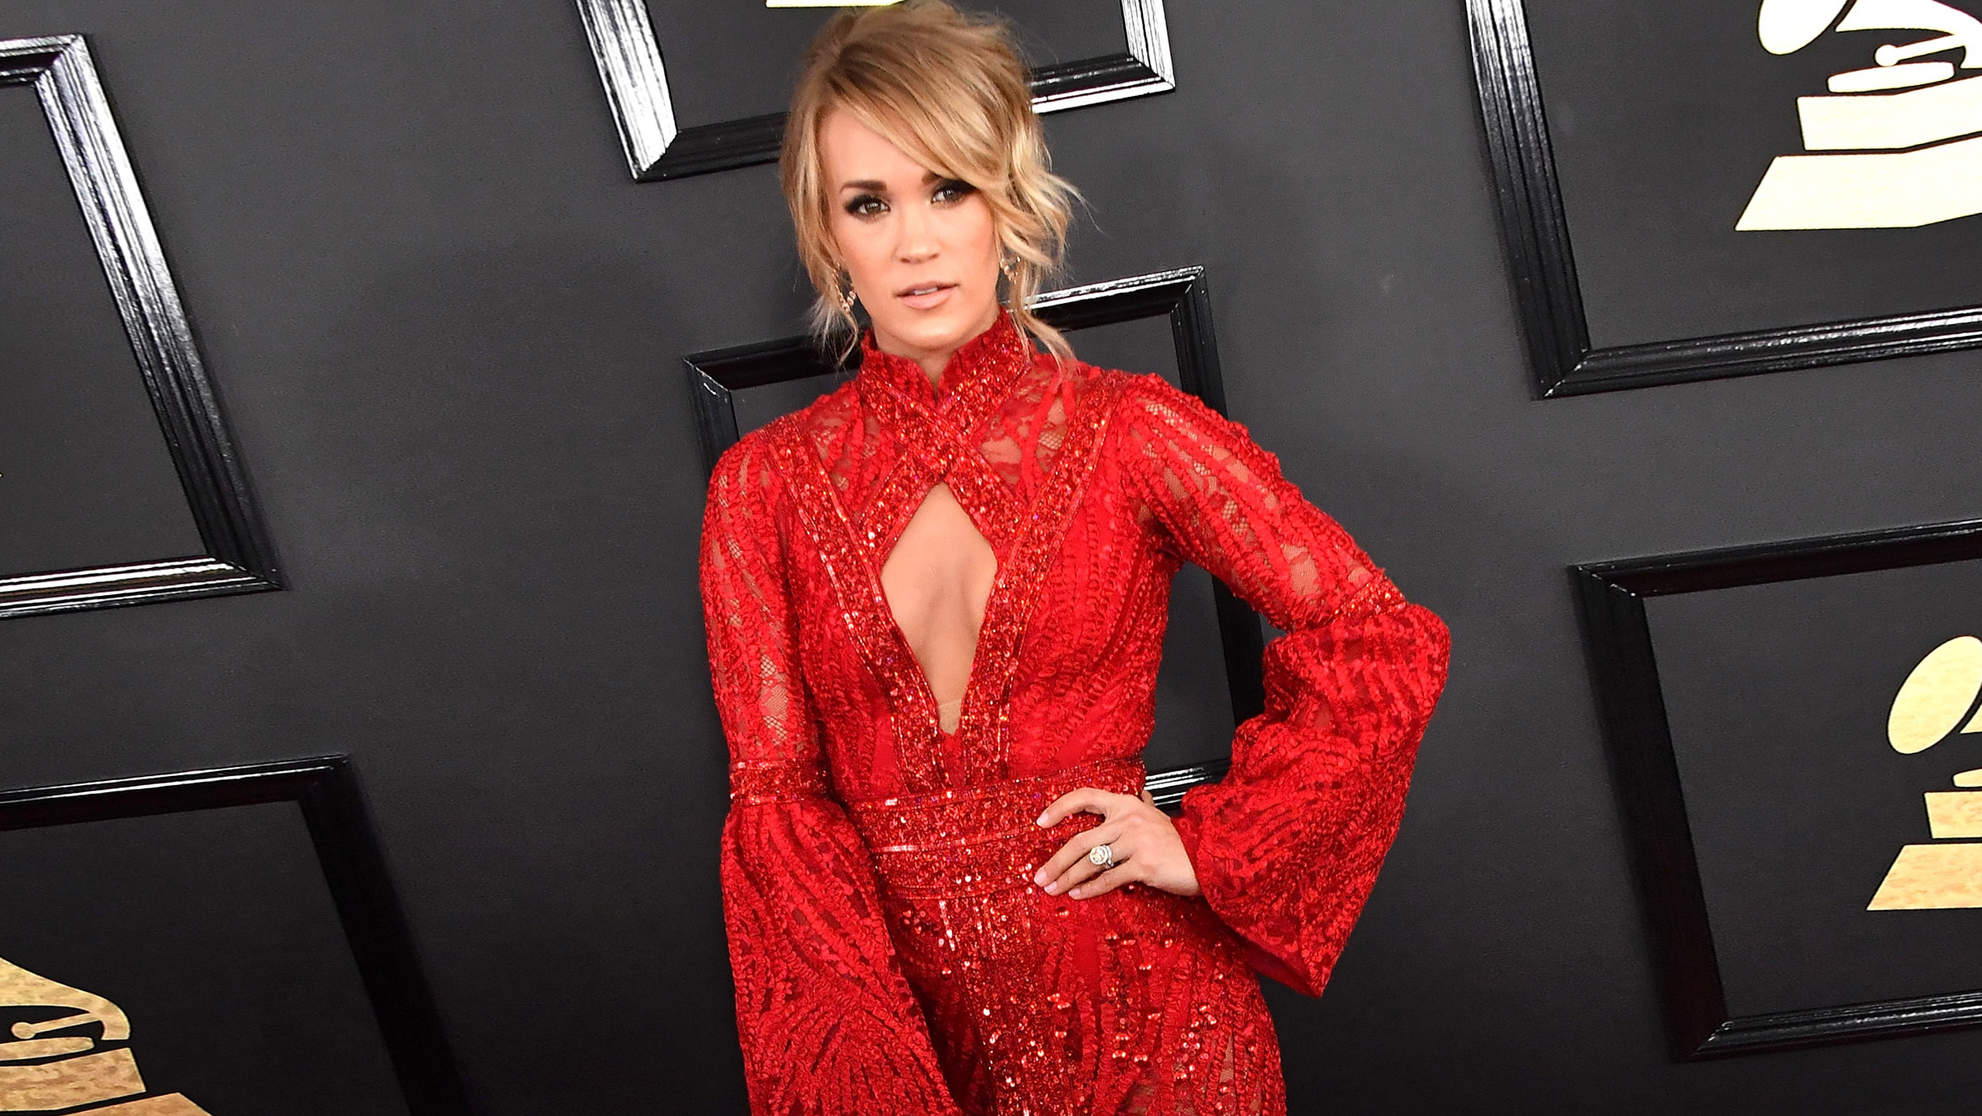 Why Carrie Underwood Went from Working Out 6 Days a Week to Just 1 or 2: 'That Just Kind of Has to Be Okay'